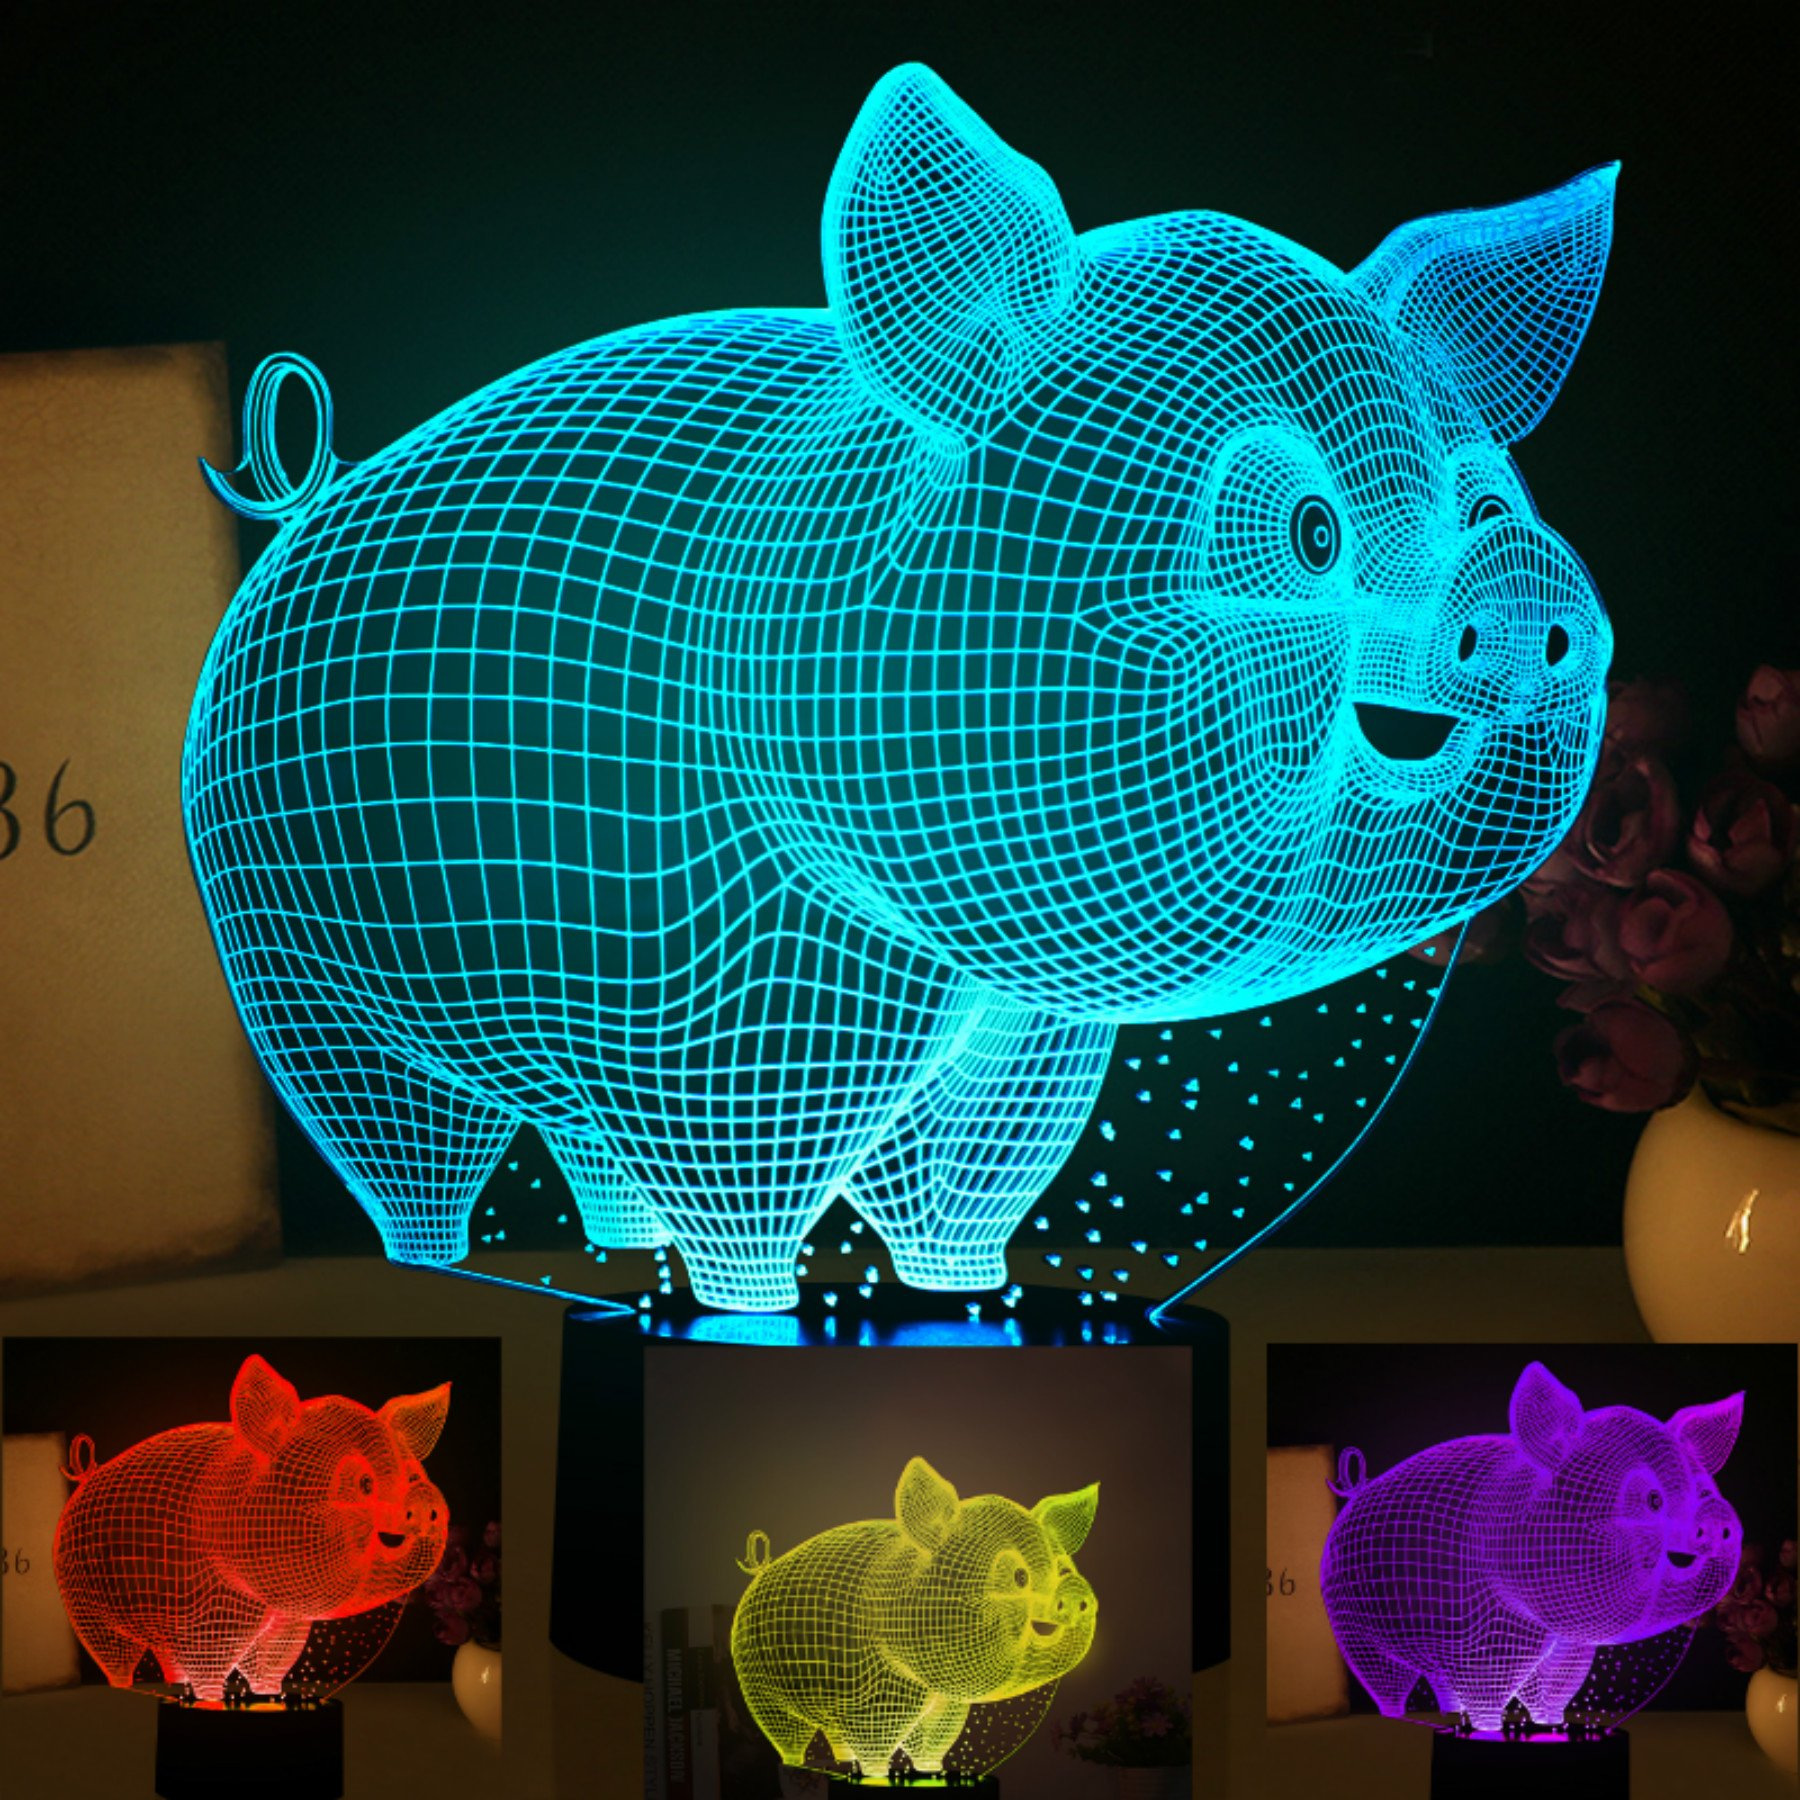 3D Abstract Animal Pig Lamp Creative Night Light 7 Color Change LED Table Desk Lamp Acrylic Flat ABS Base USB Charger Home Decoration Toy Brithday Xmas Kid Children Gift